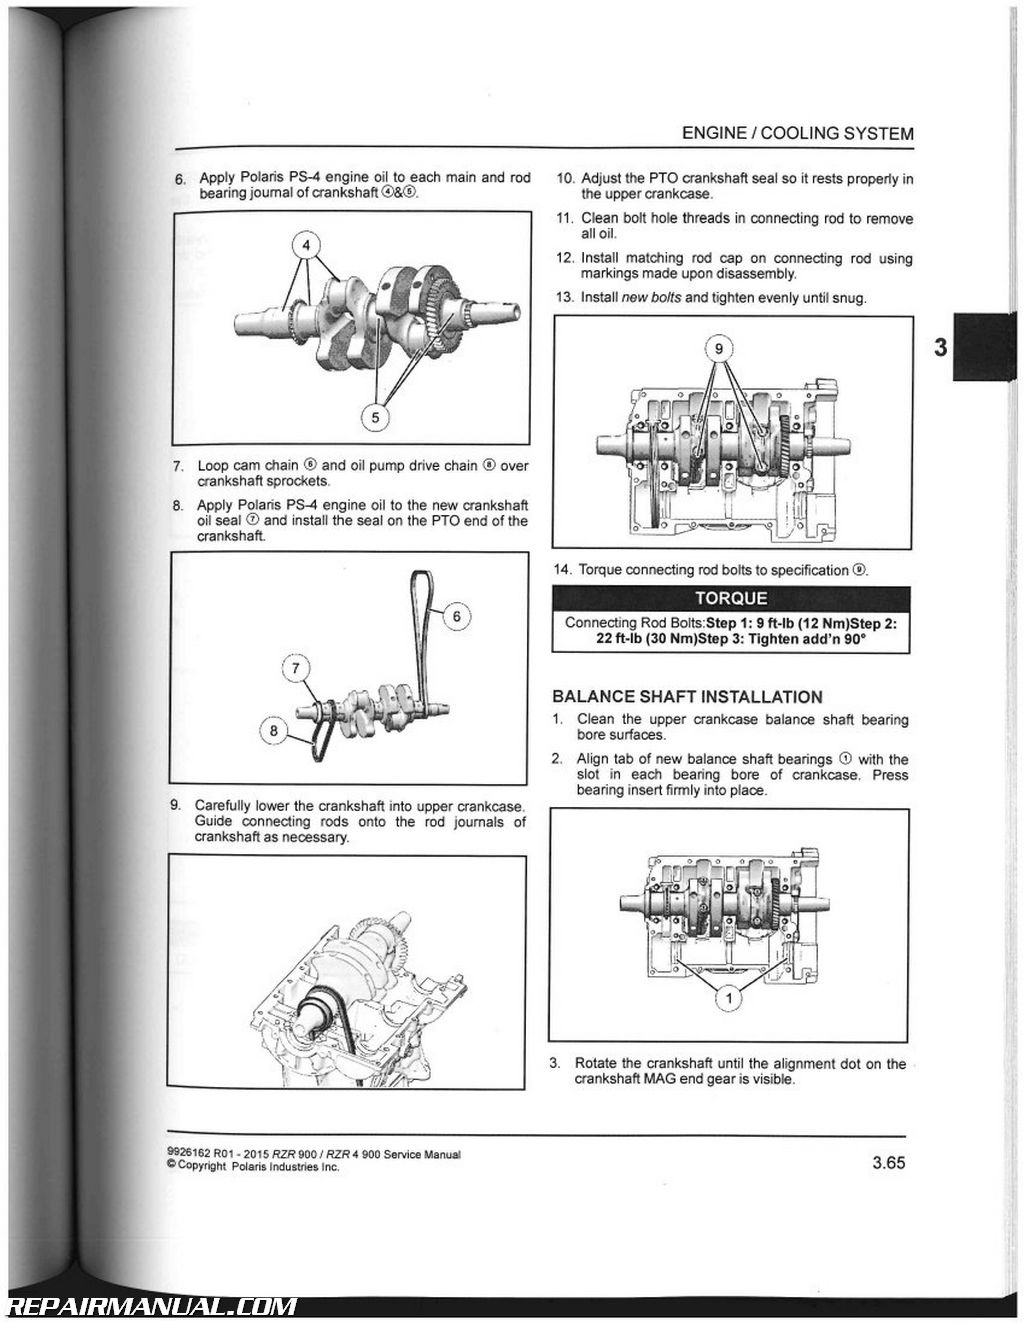 2015 polaris ranger rzr 900 rzr 4 900 side by side service manual rh  repairmanual com 2015 polaris rzr 900 wiring diagram polaris rzr 900 wiring  diagram